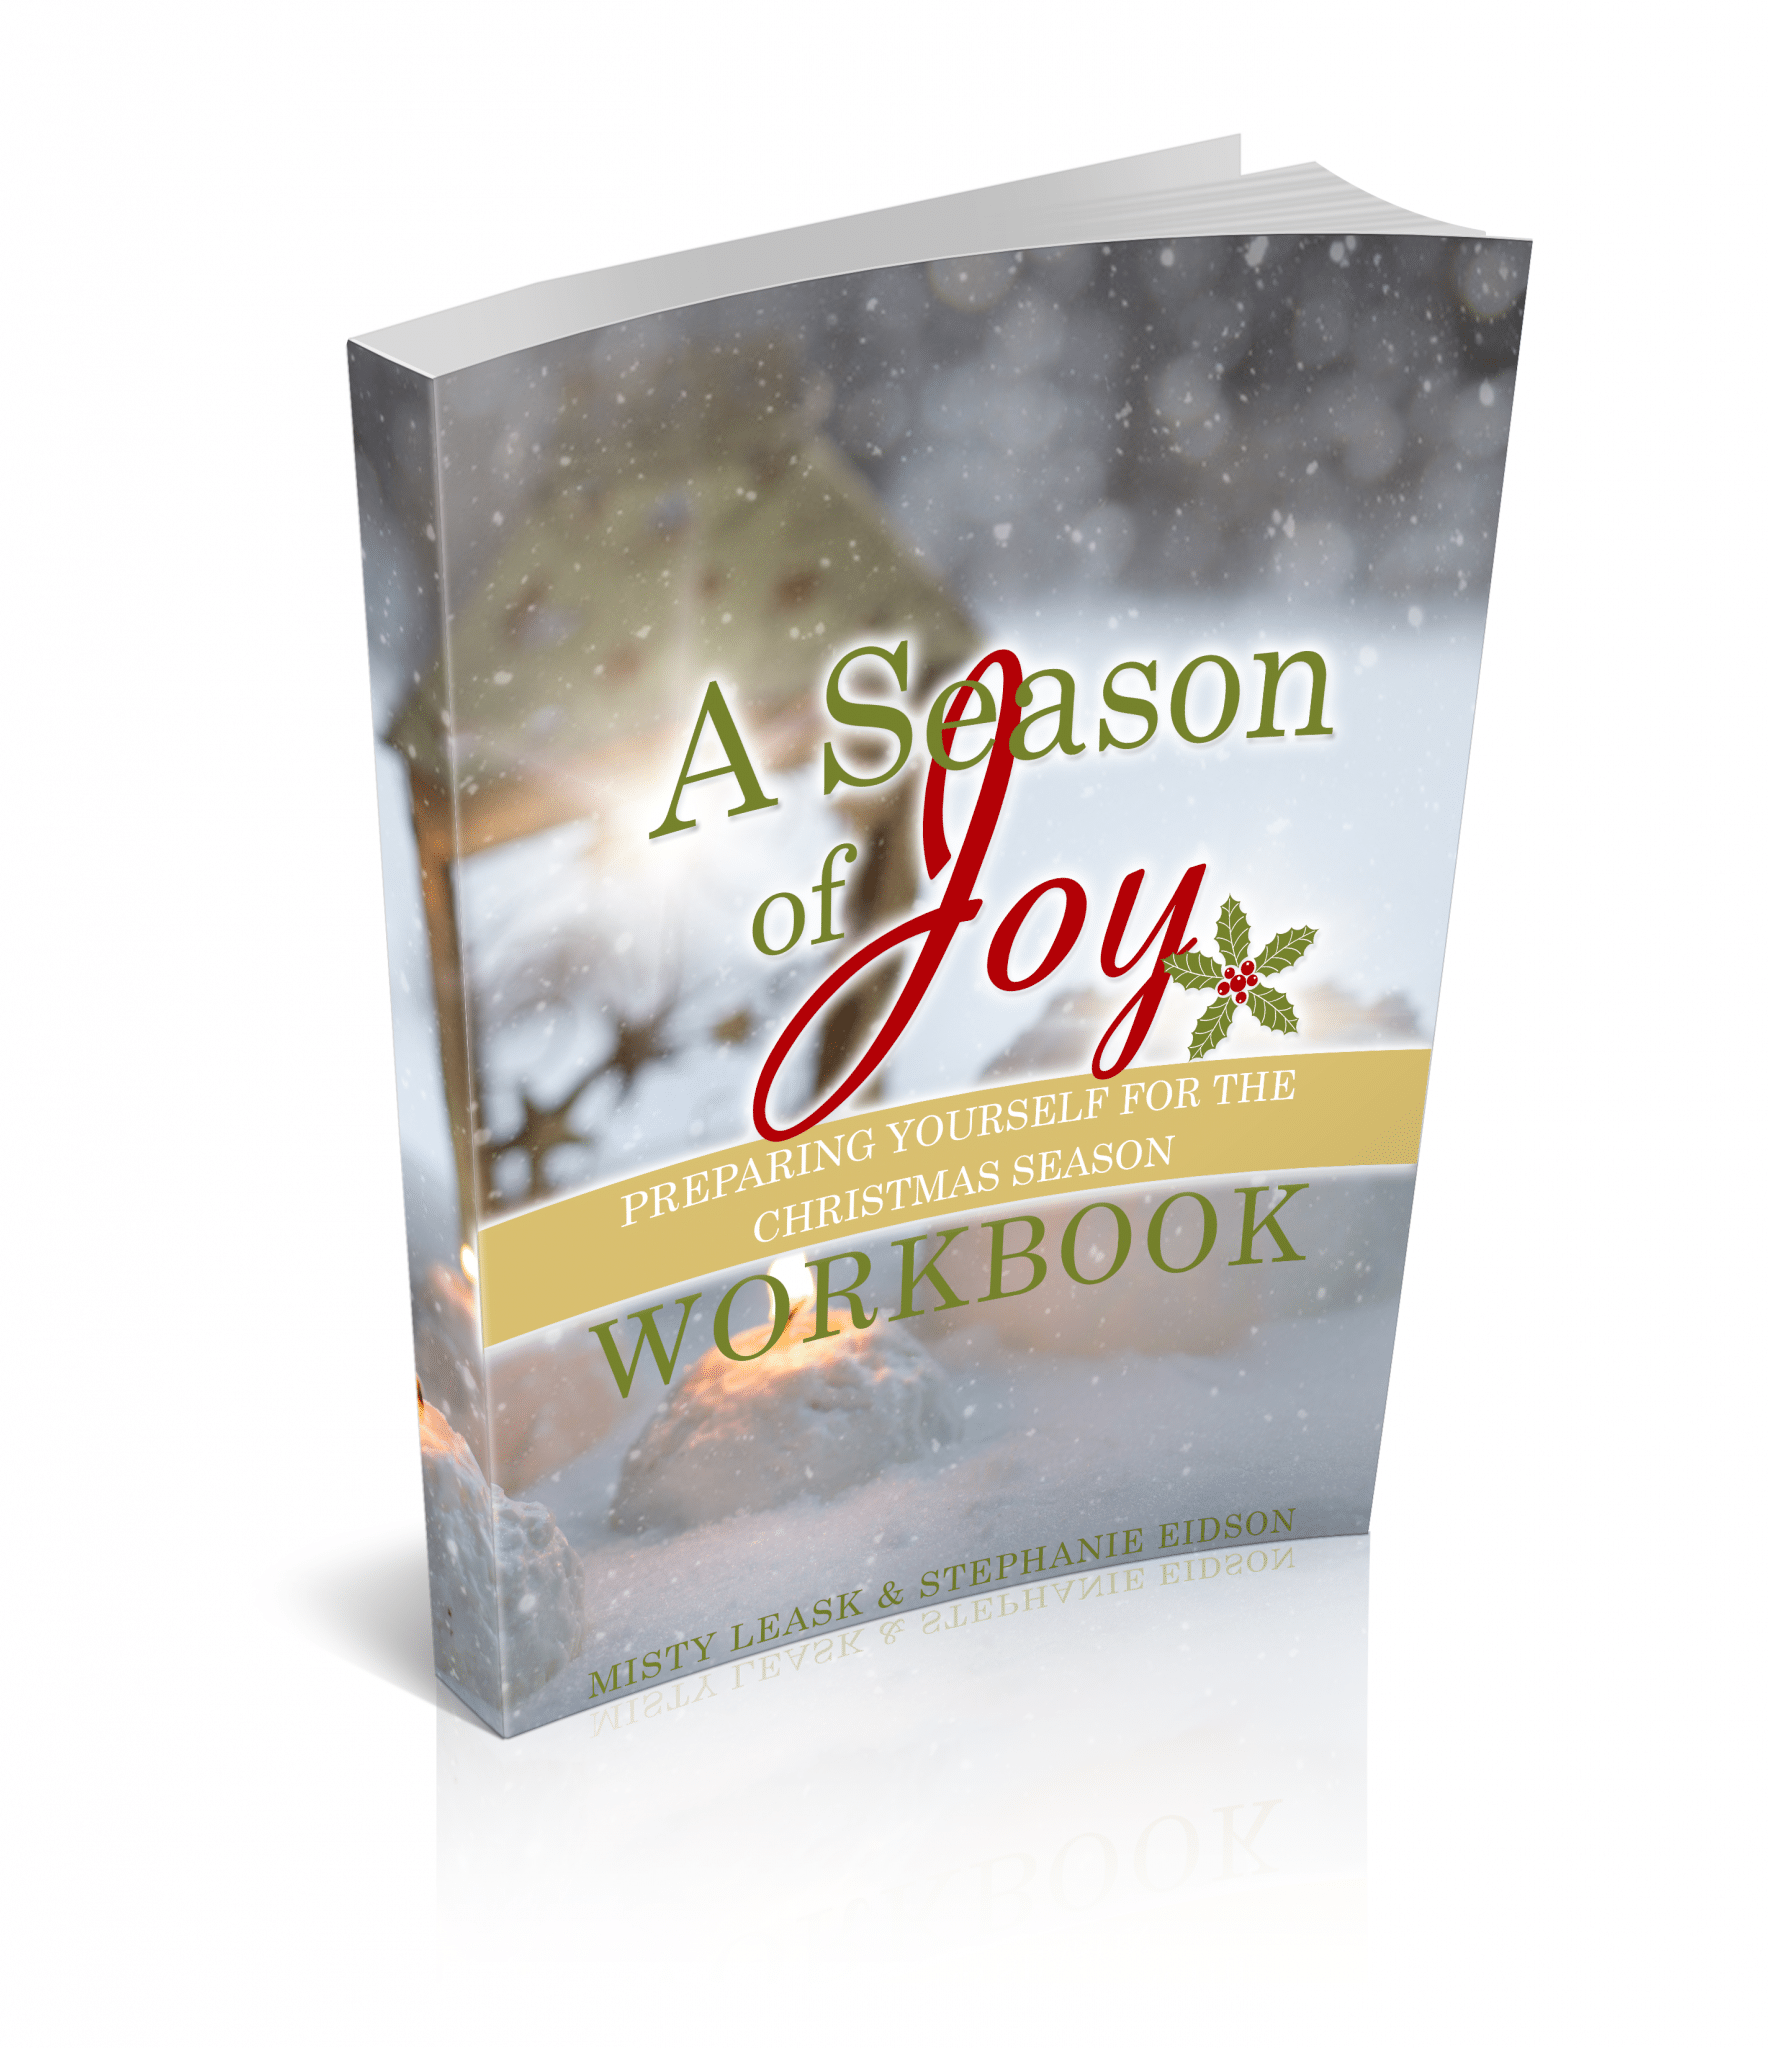 a-season-of-joy-workbook-cover-3d